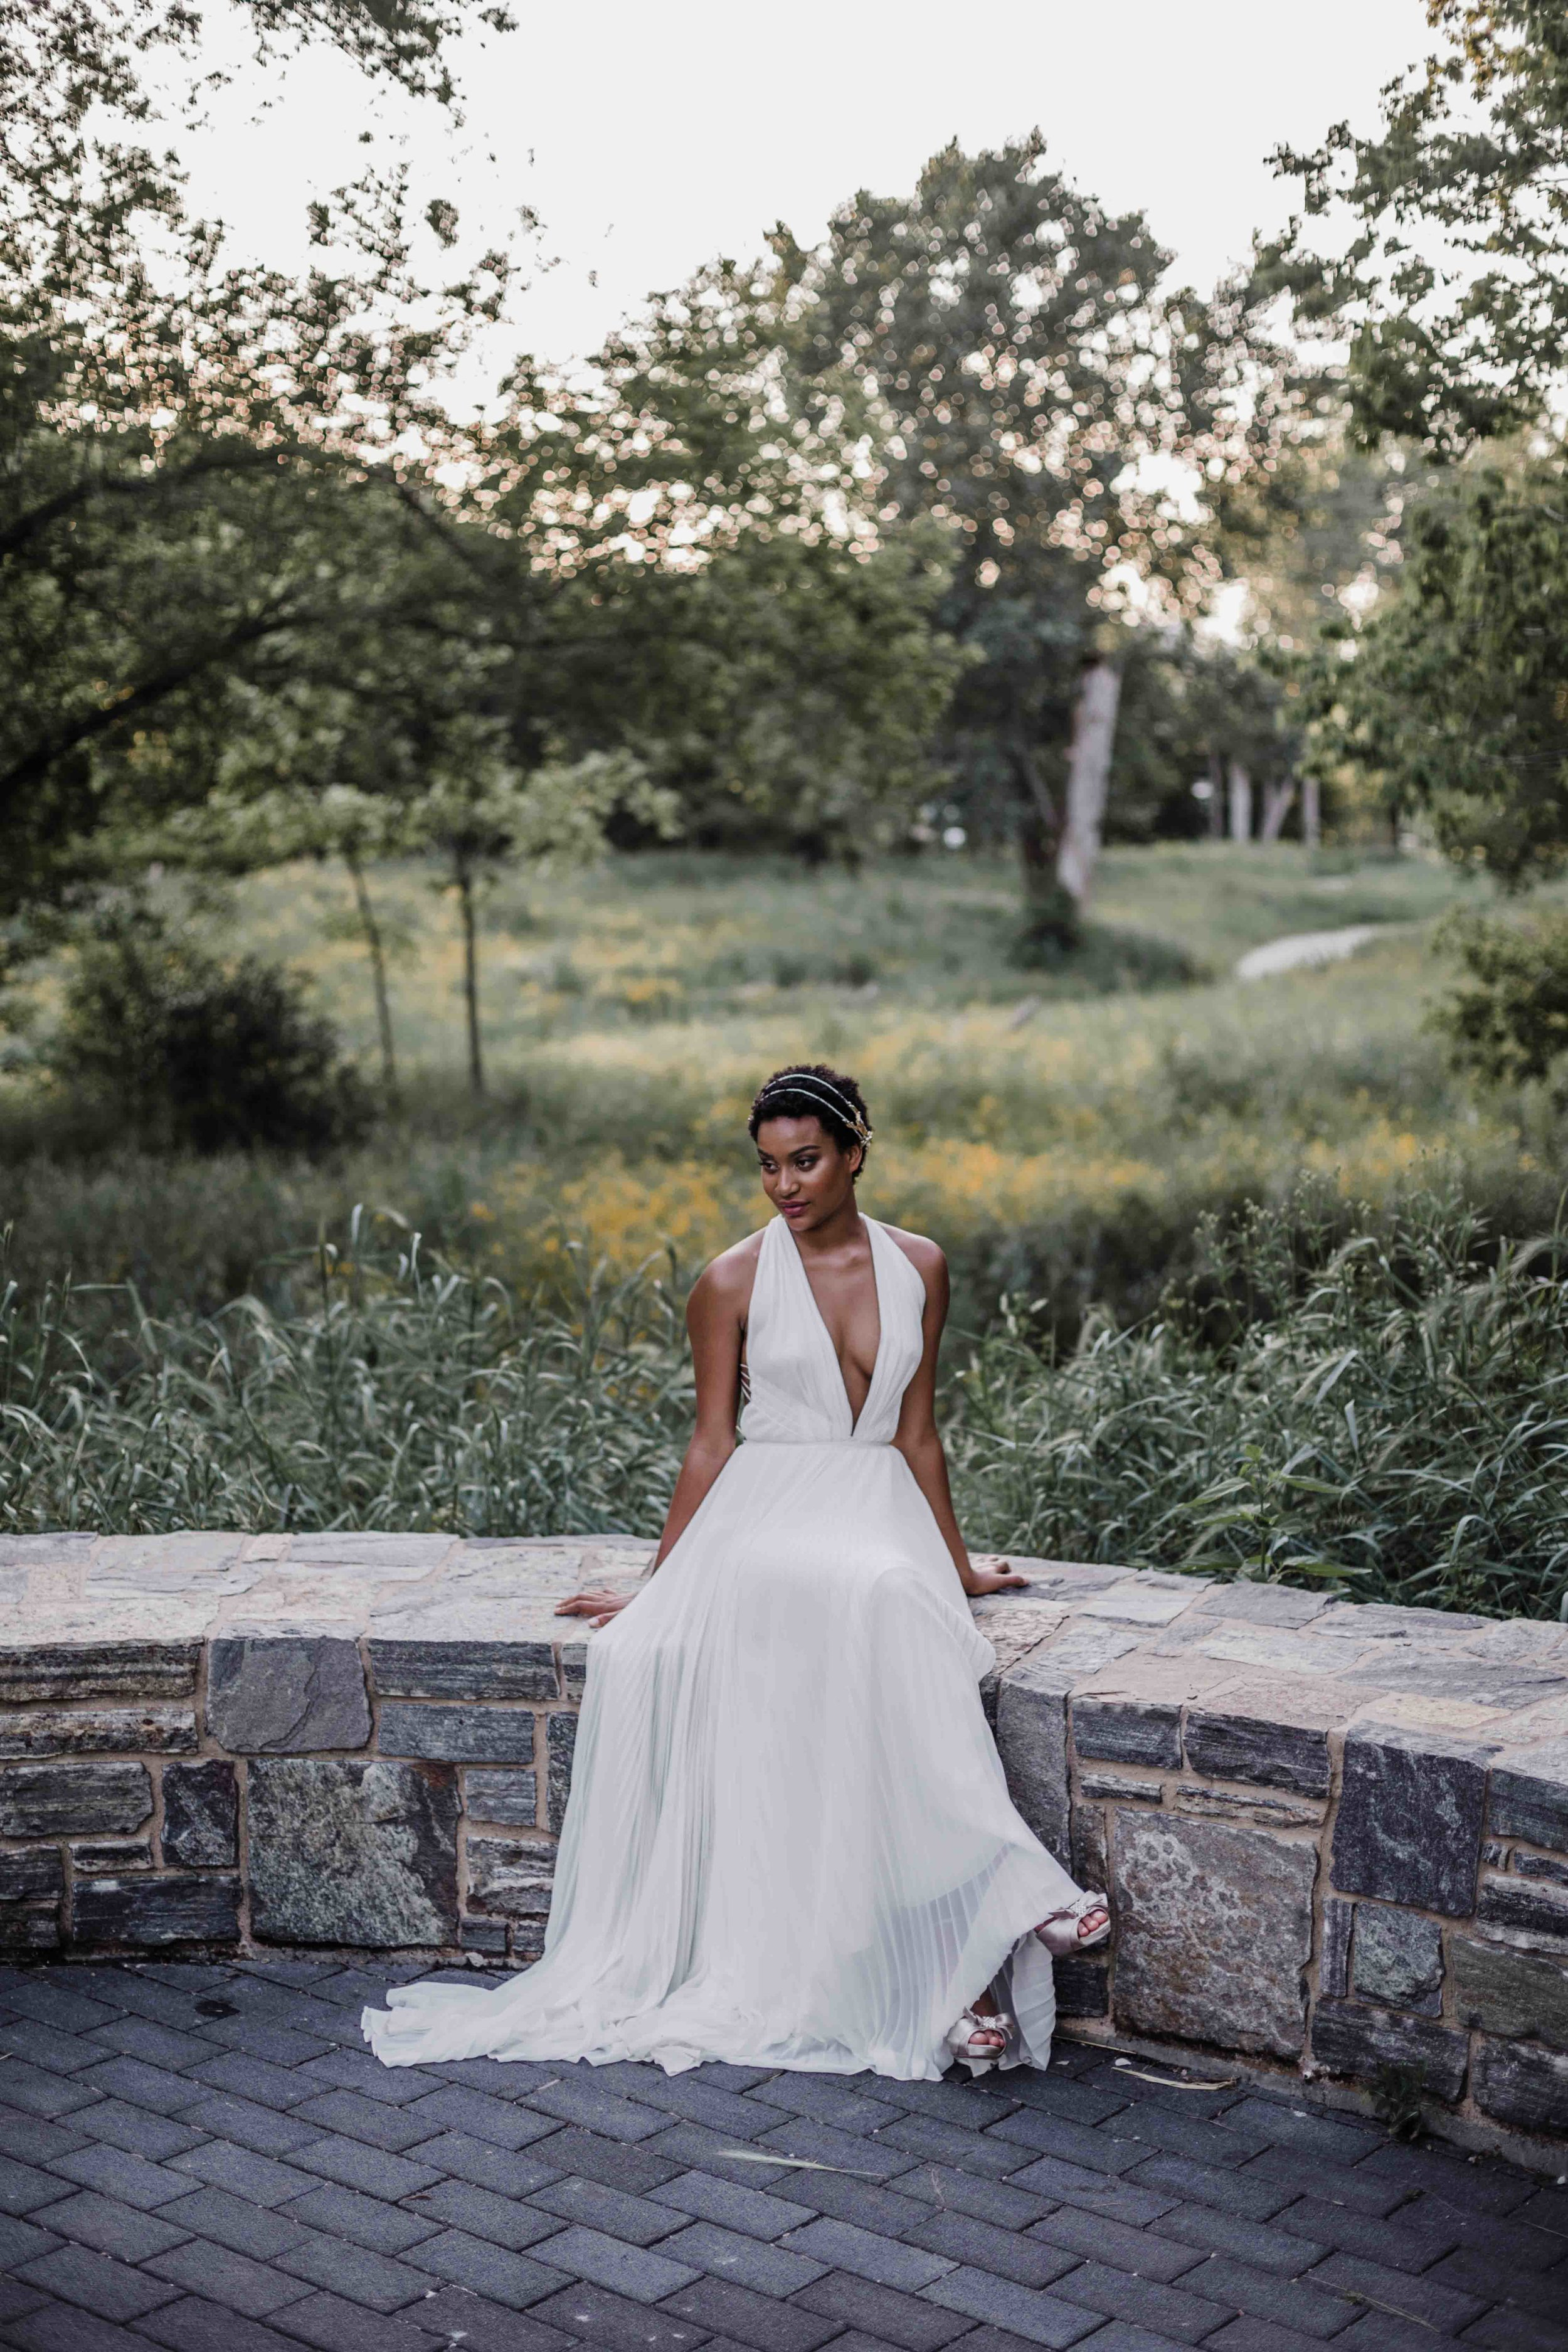 Best places near Chicago for elopement pictures